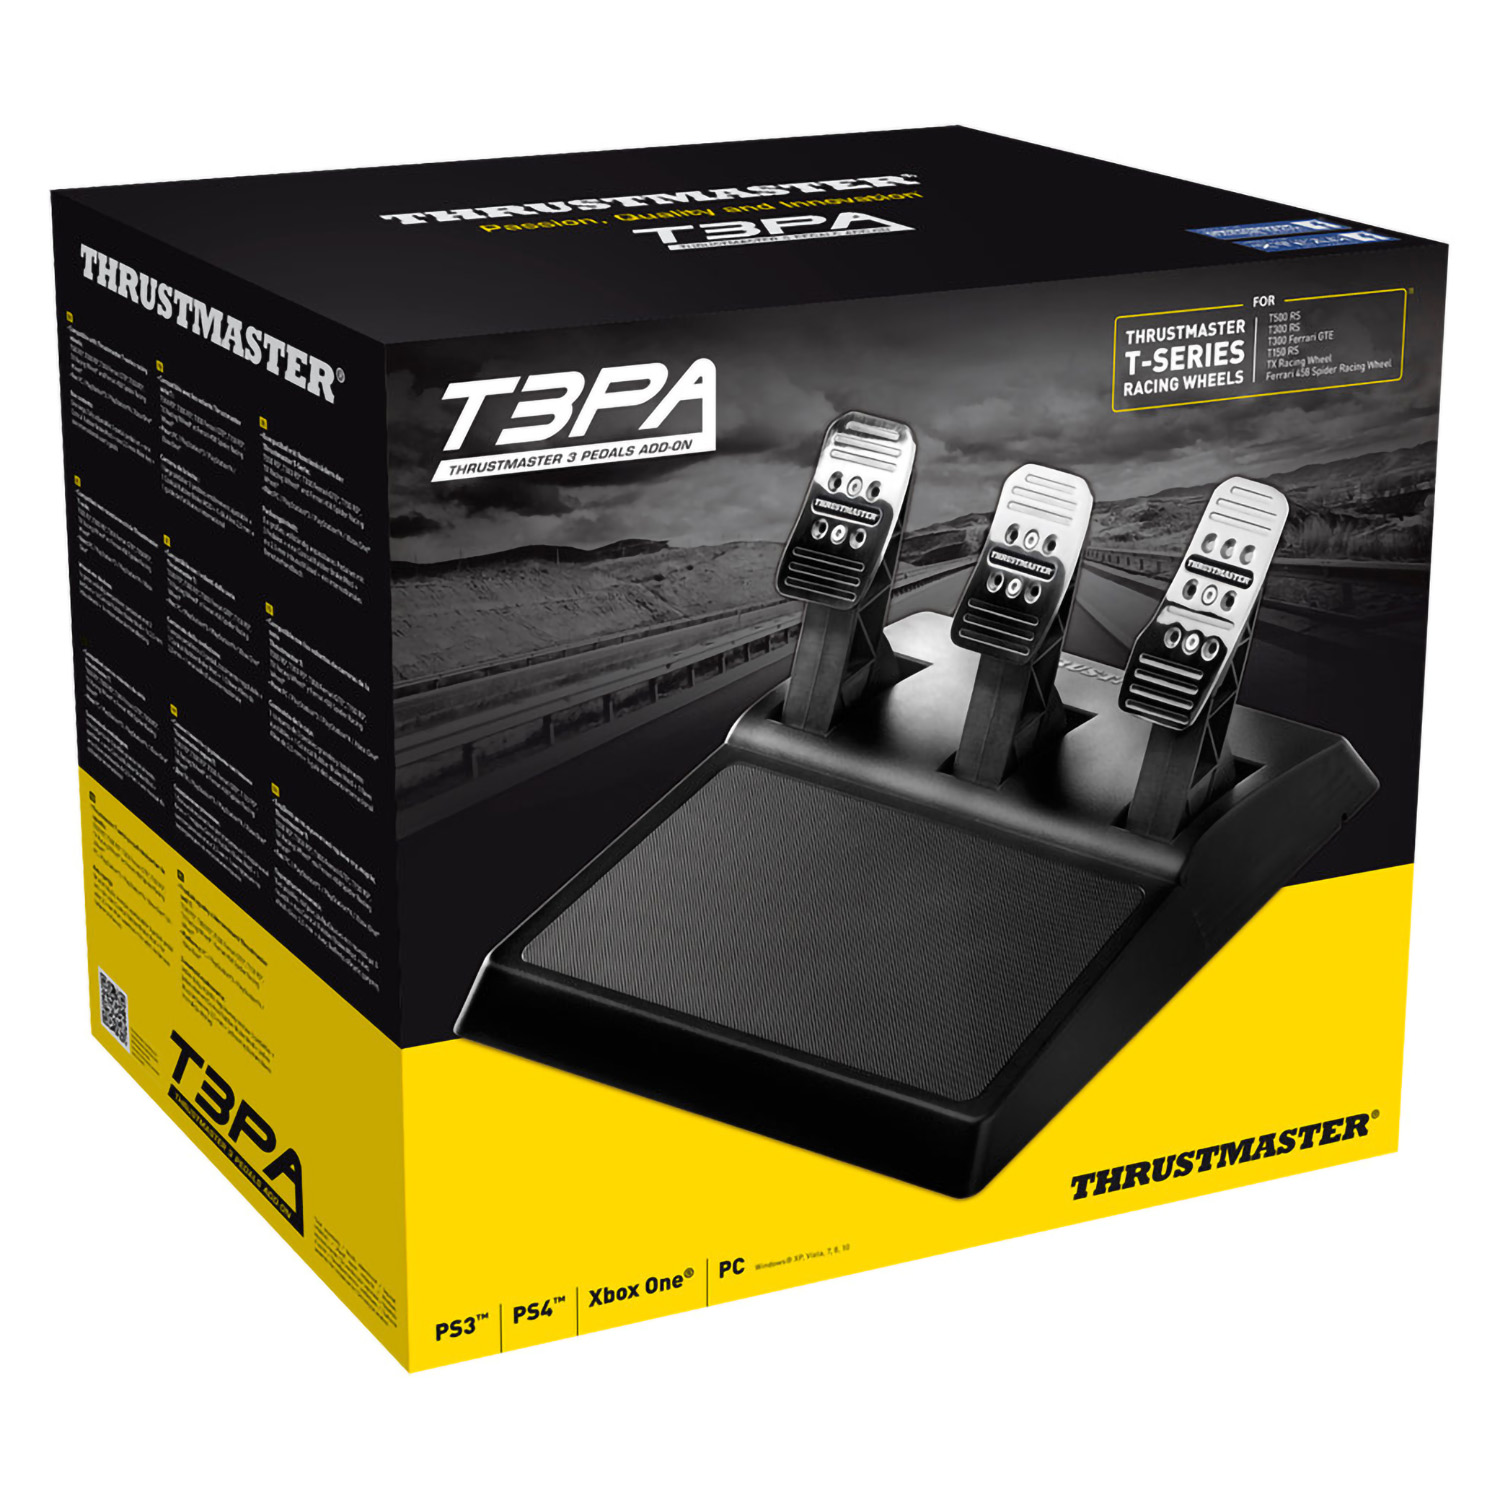 Педали Thrustmaster T3PA, 3 Pedals Add On, PS3/PS4/PC/XboxOne